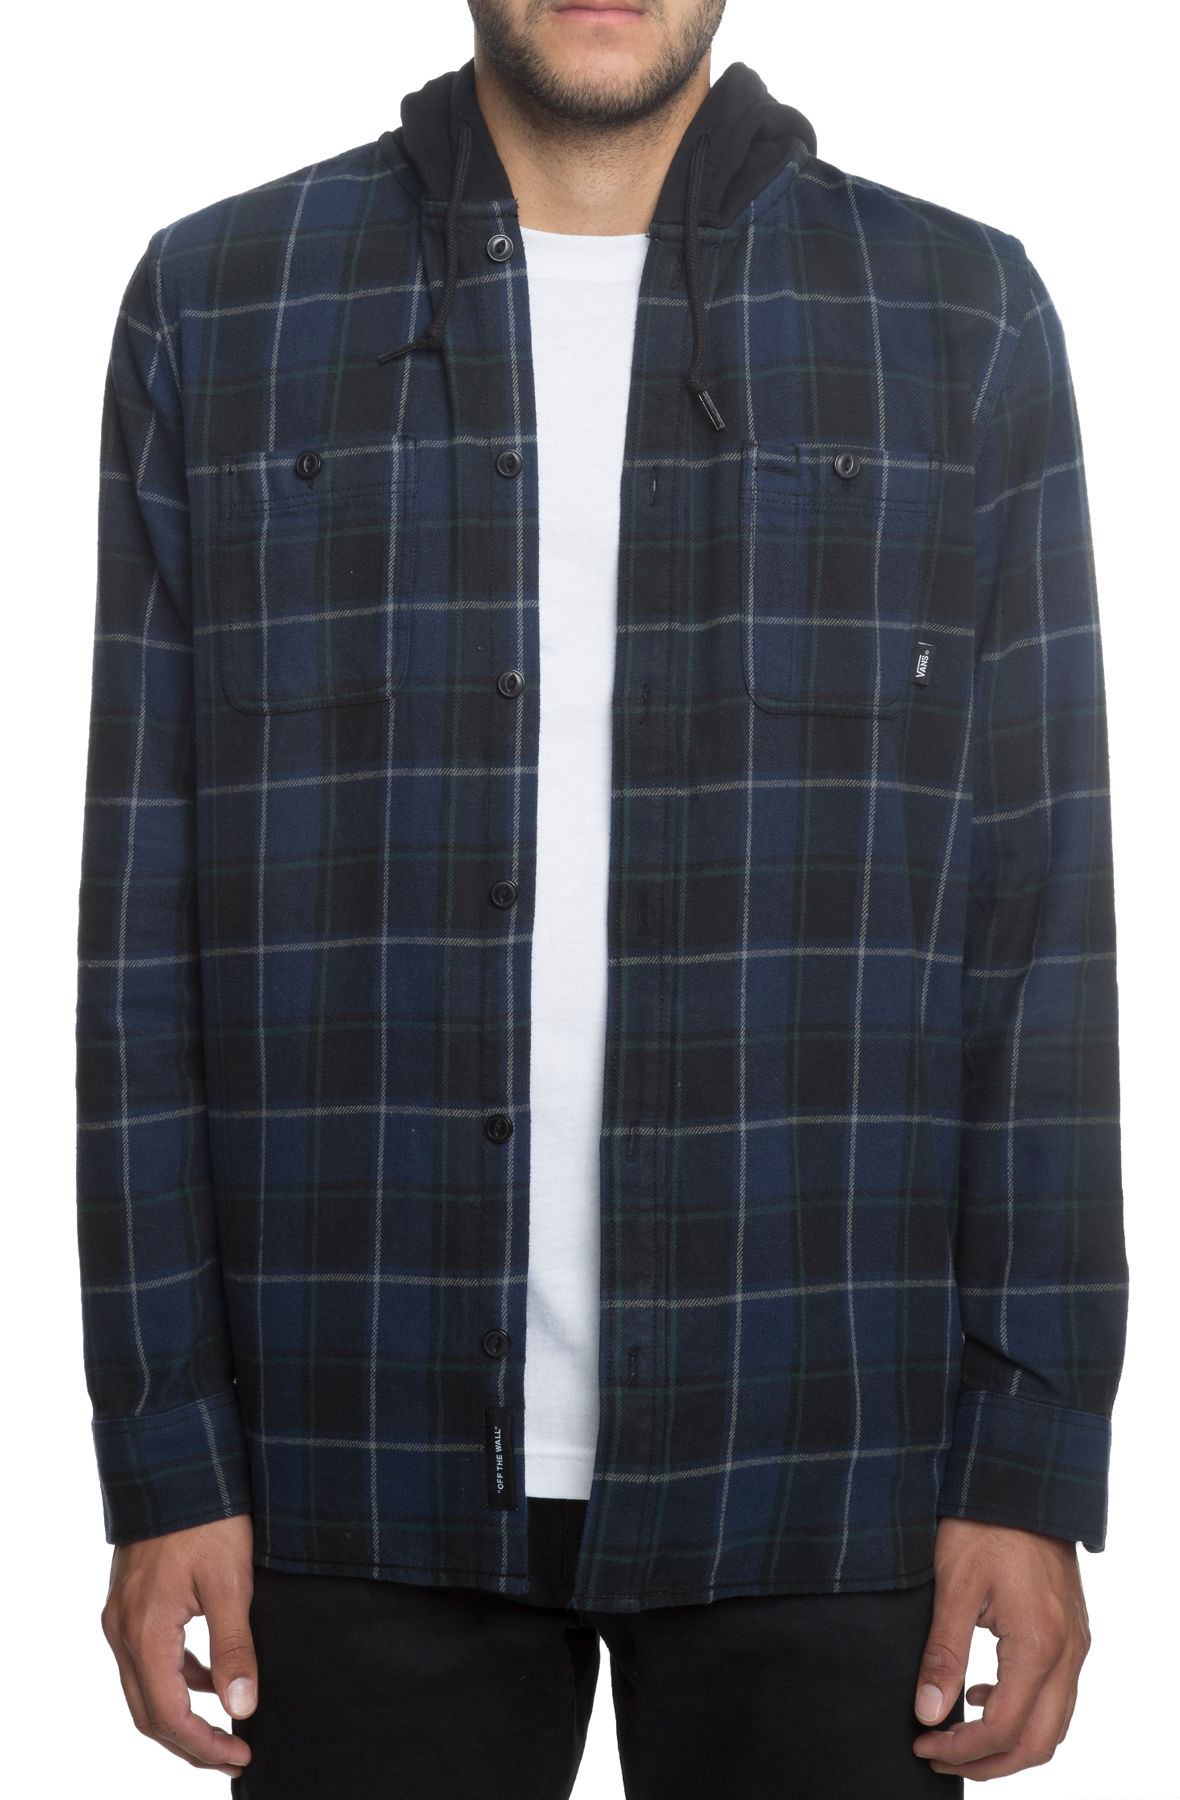 Image of The Lopes Hooded Flannel Combo in Dress Blues